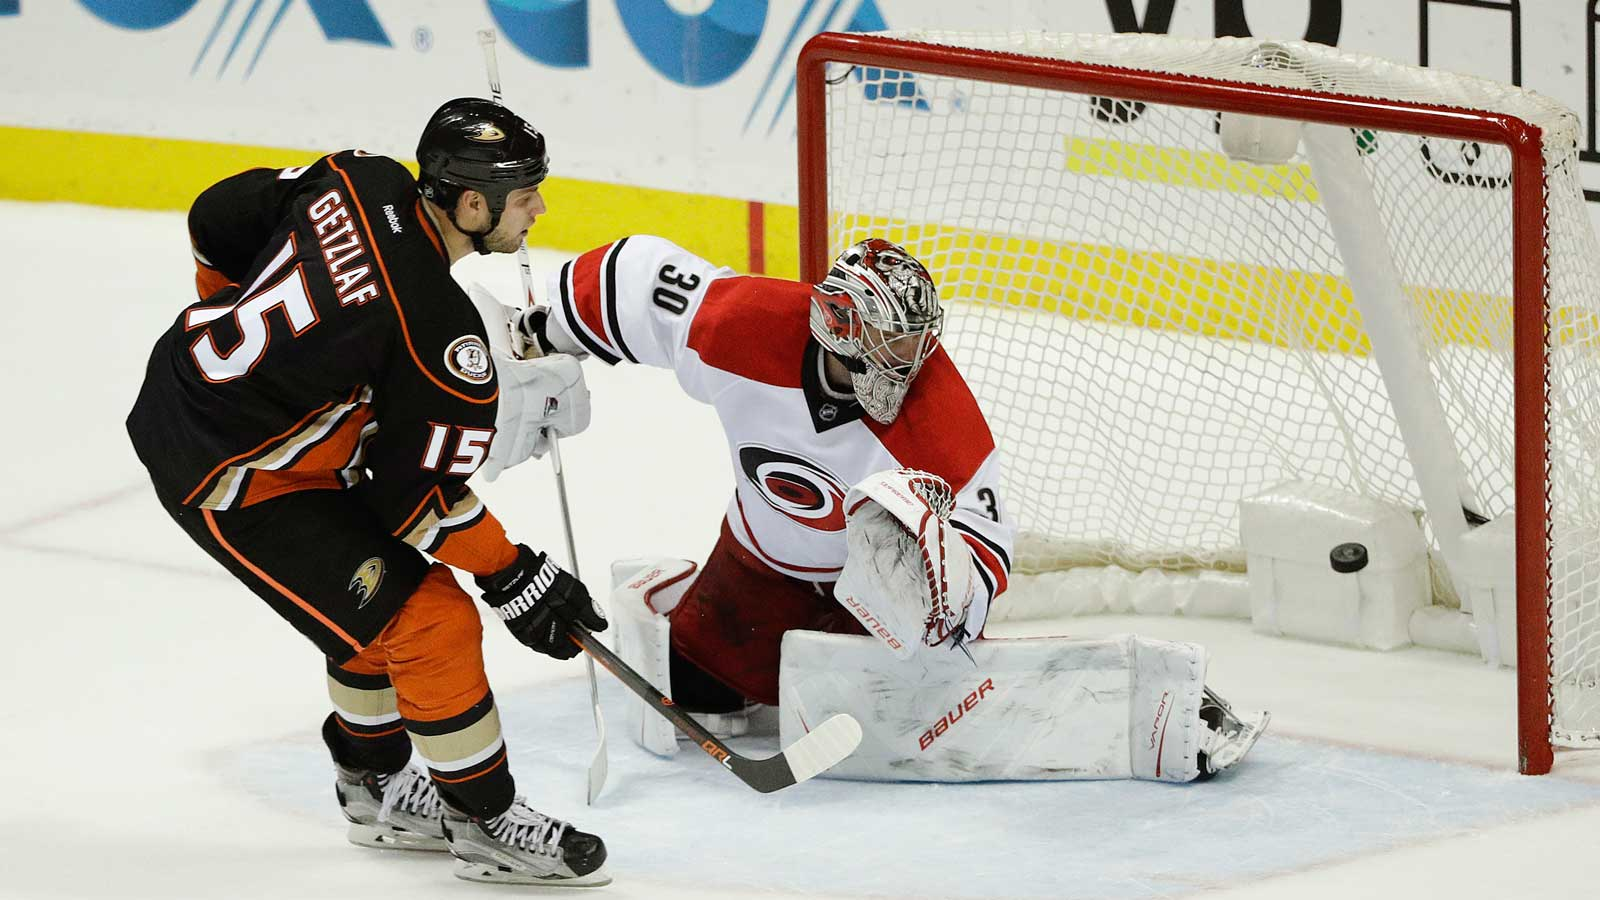 Ducks tie it late, Kase beats Canes in shootout